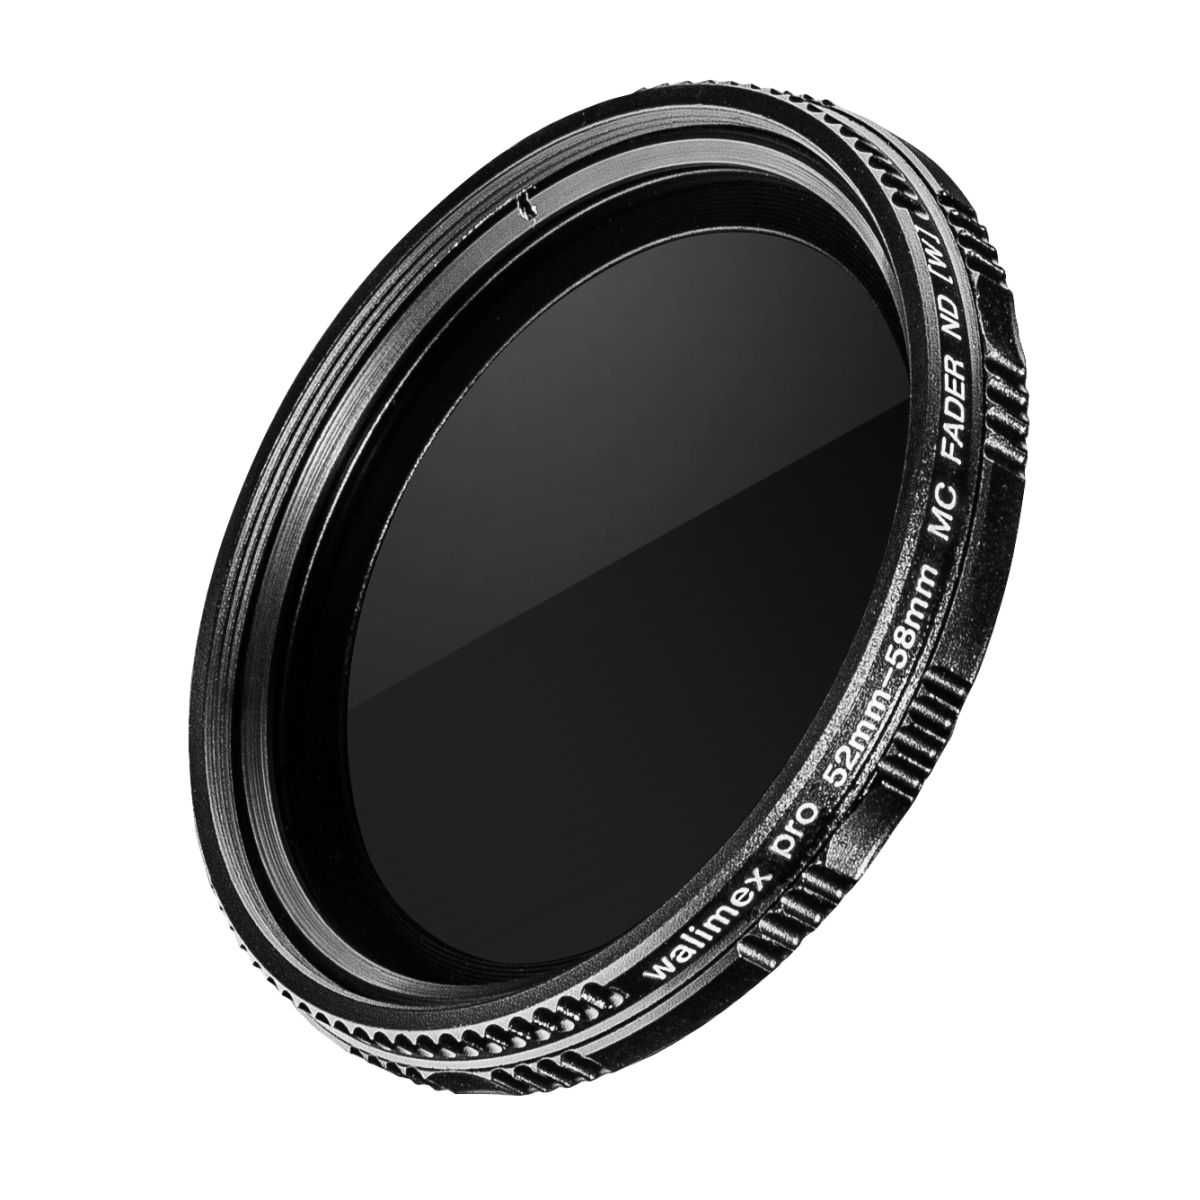 Walimex pro ND-Fader coated 52 mm ND2 - ND400